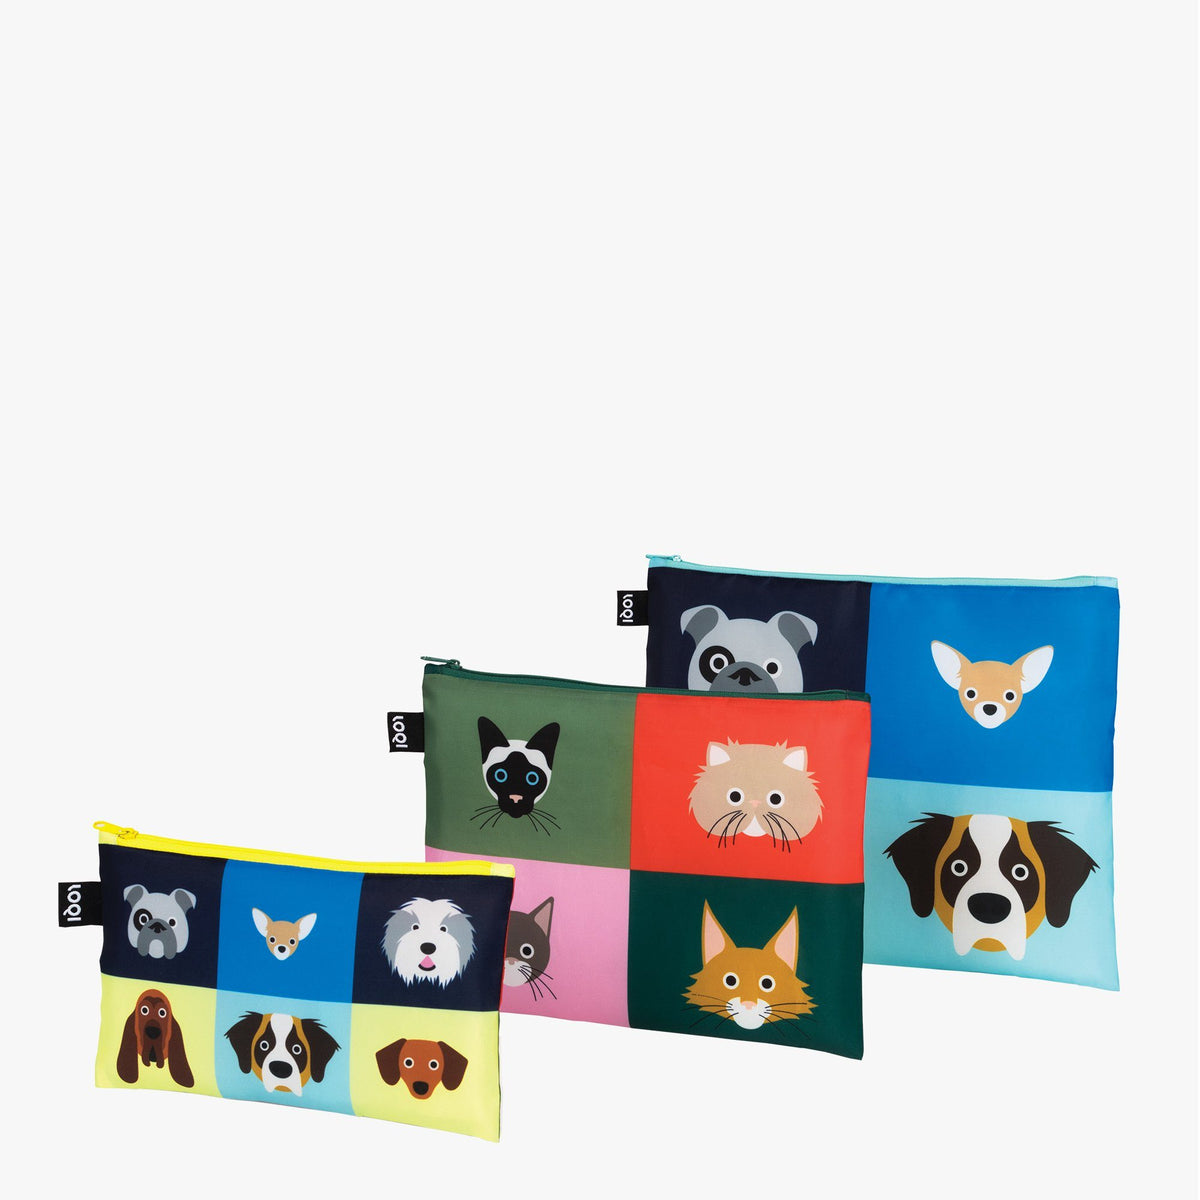 LOQI Stephen Cheetham Cats & Dogs Zip Pockets Stacked